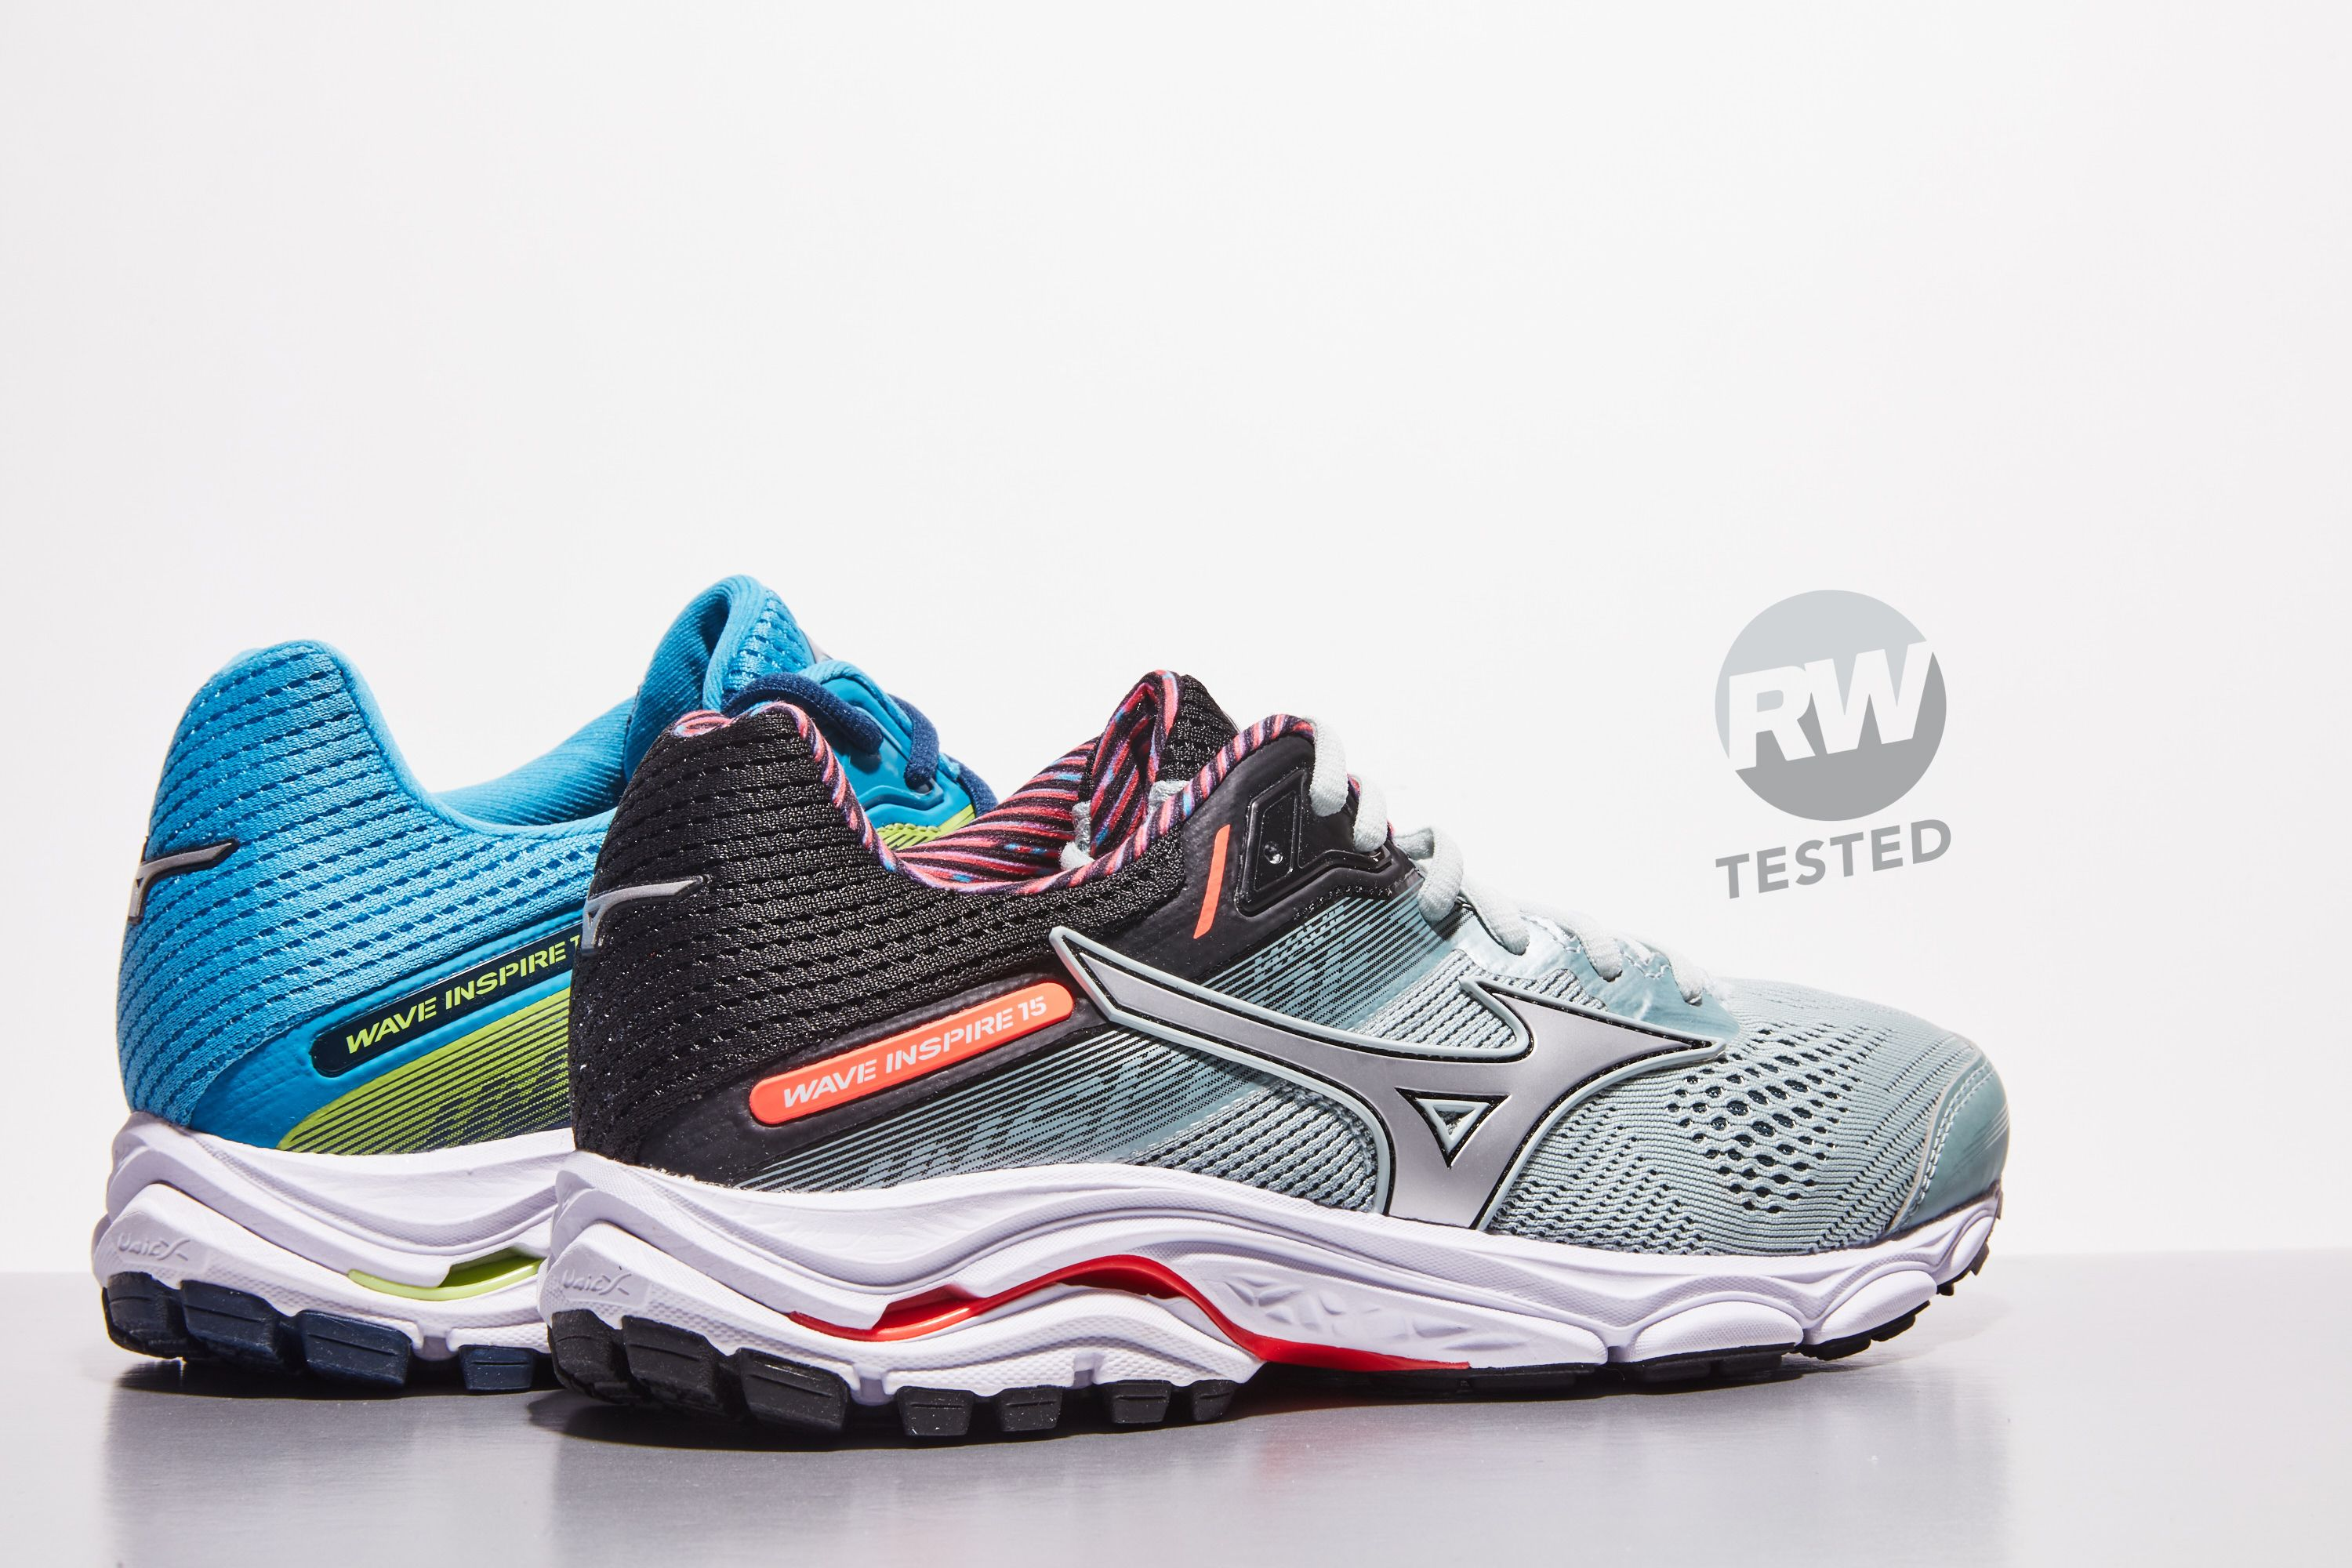 mizuno wave inspire women's